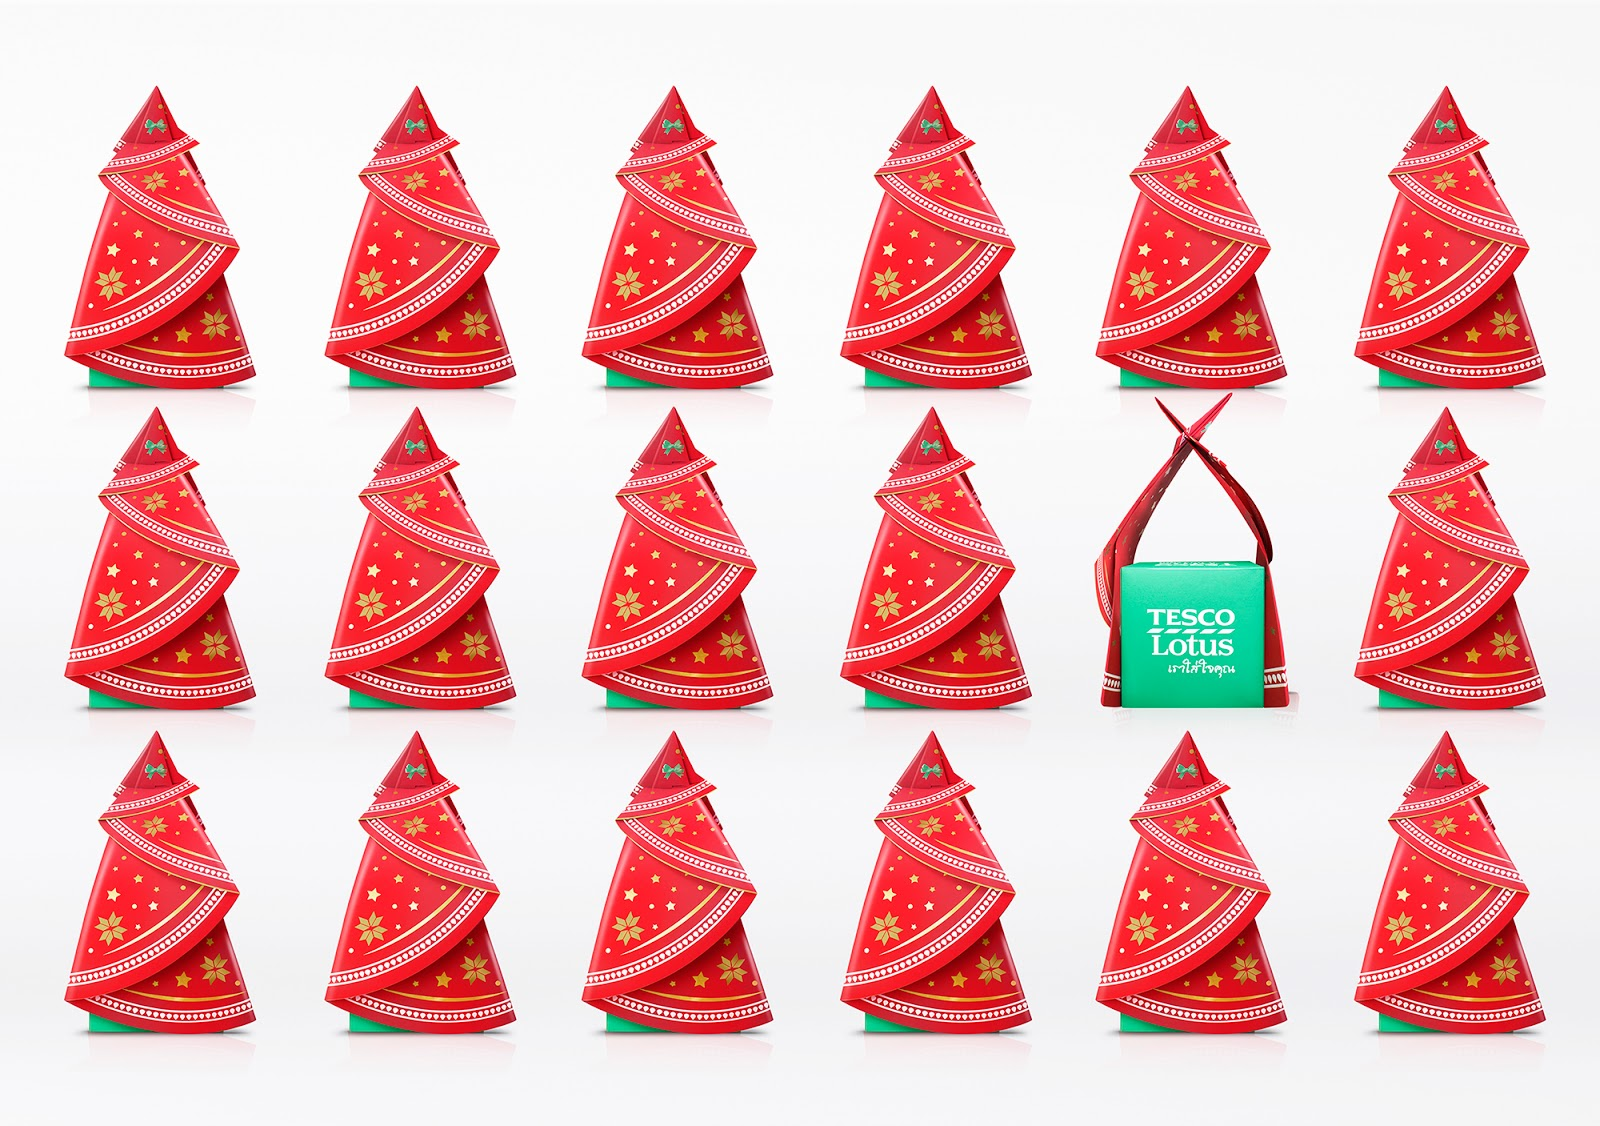 competitive price 57184 2777a Tesco Lotus Christmas Tree Gift Set Box on Packaging of the ...